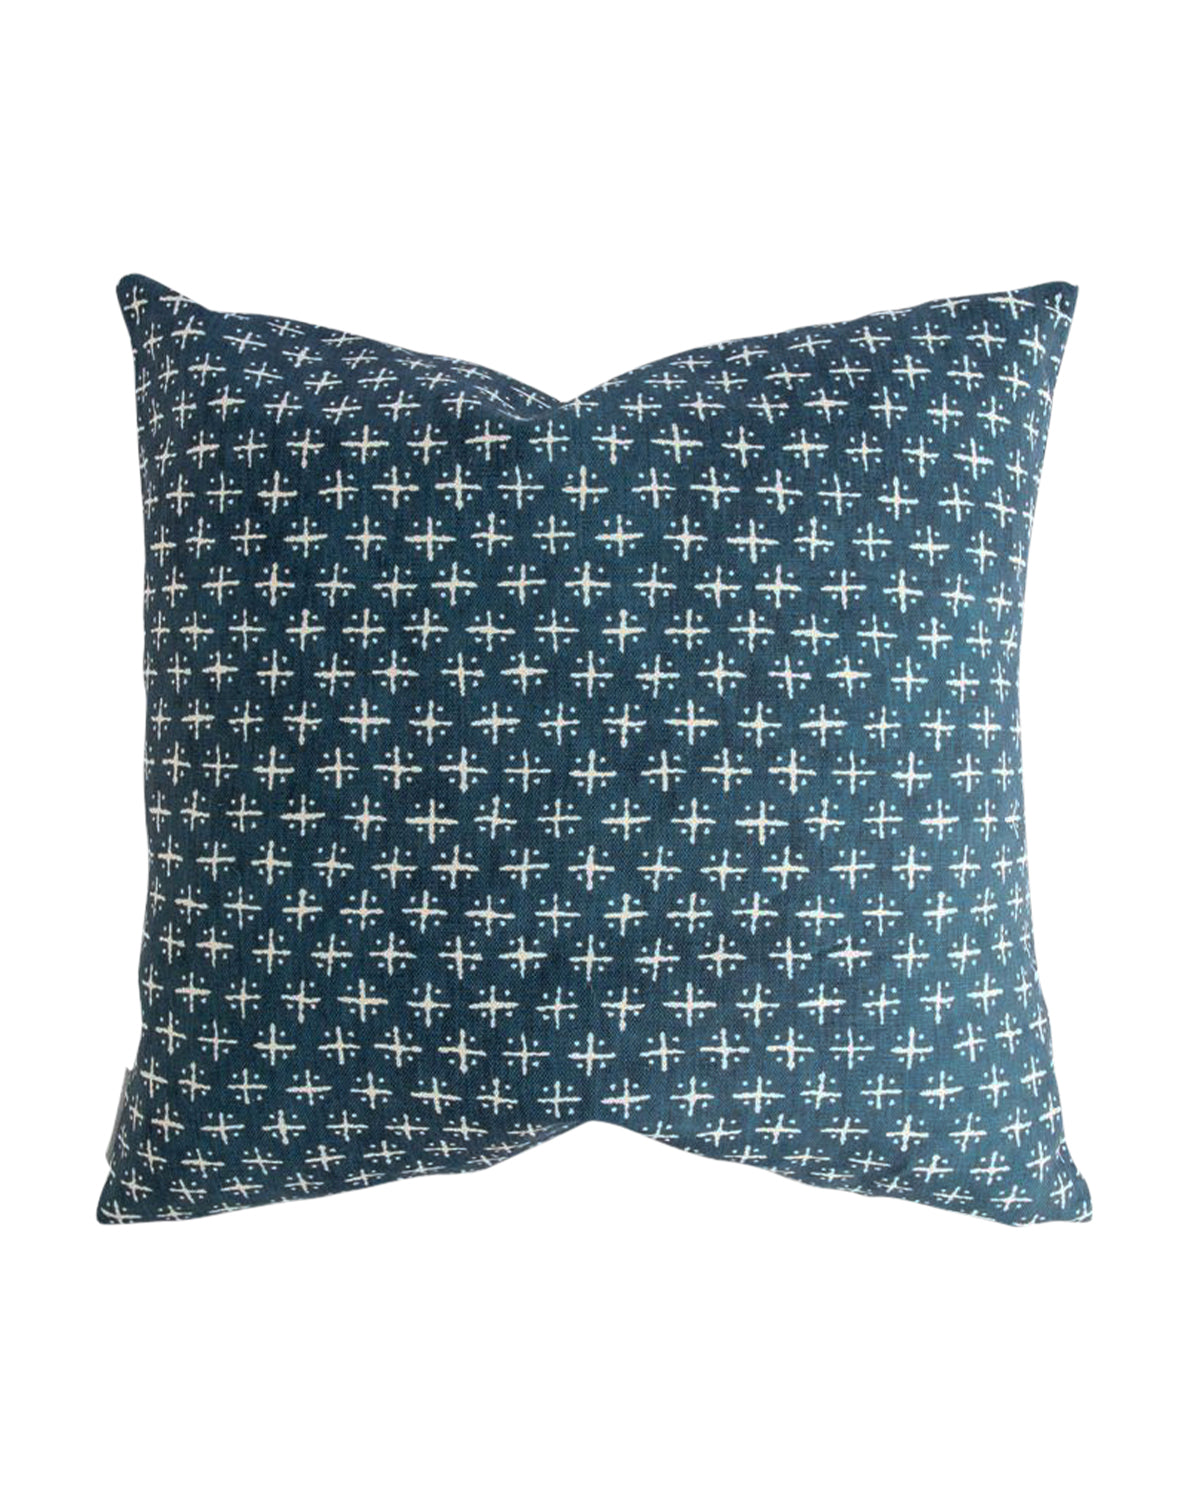 Newport Cross Pillow Cover